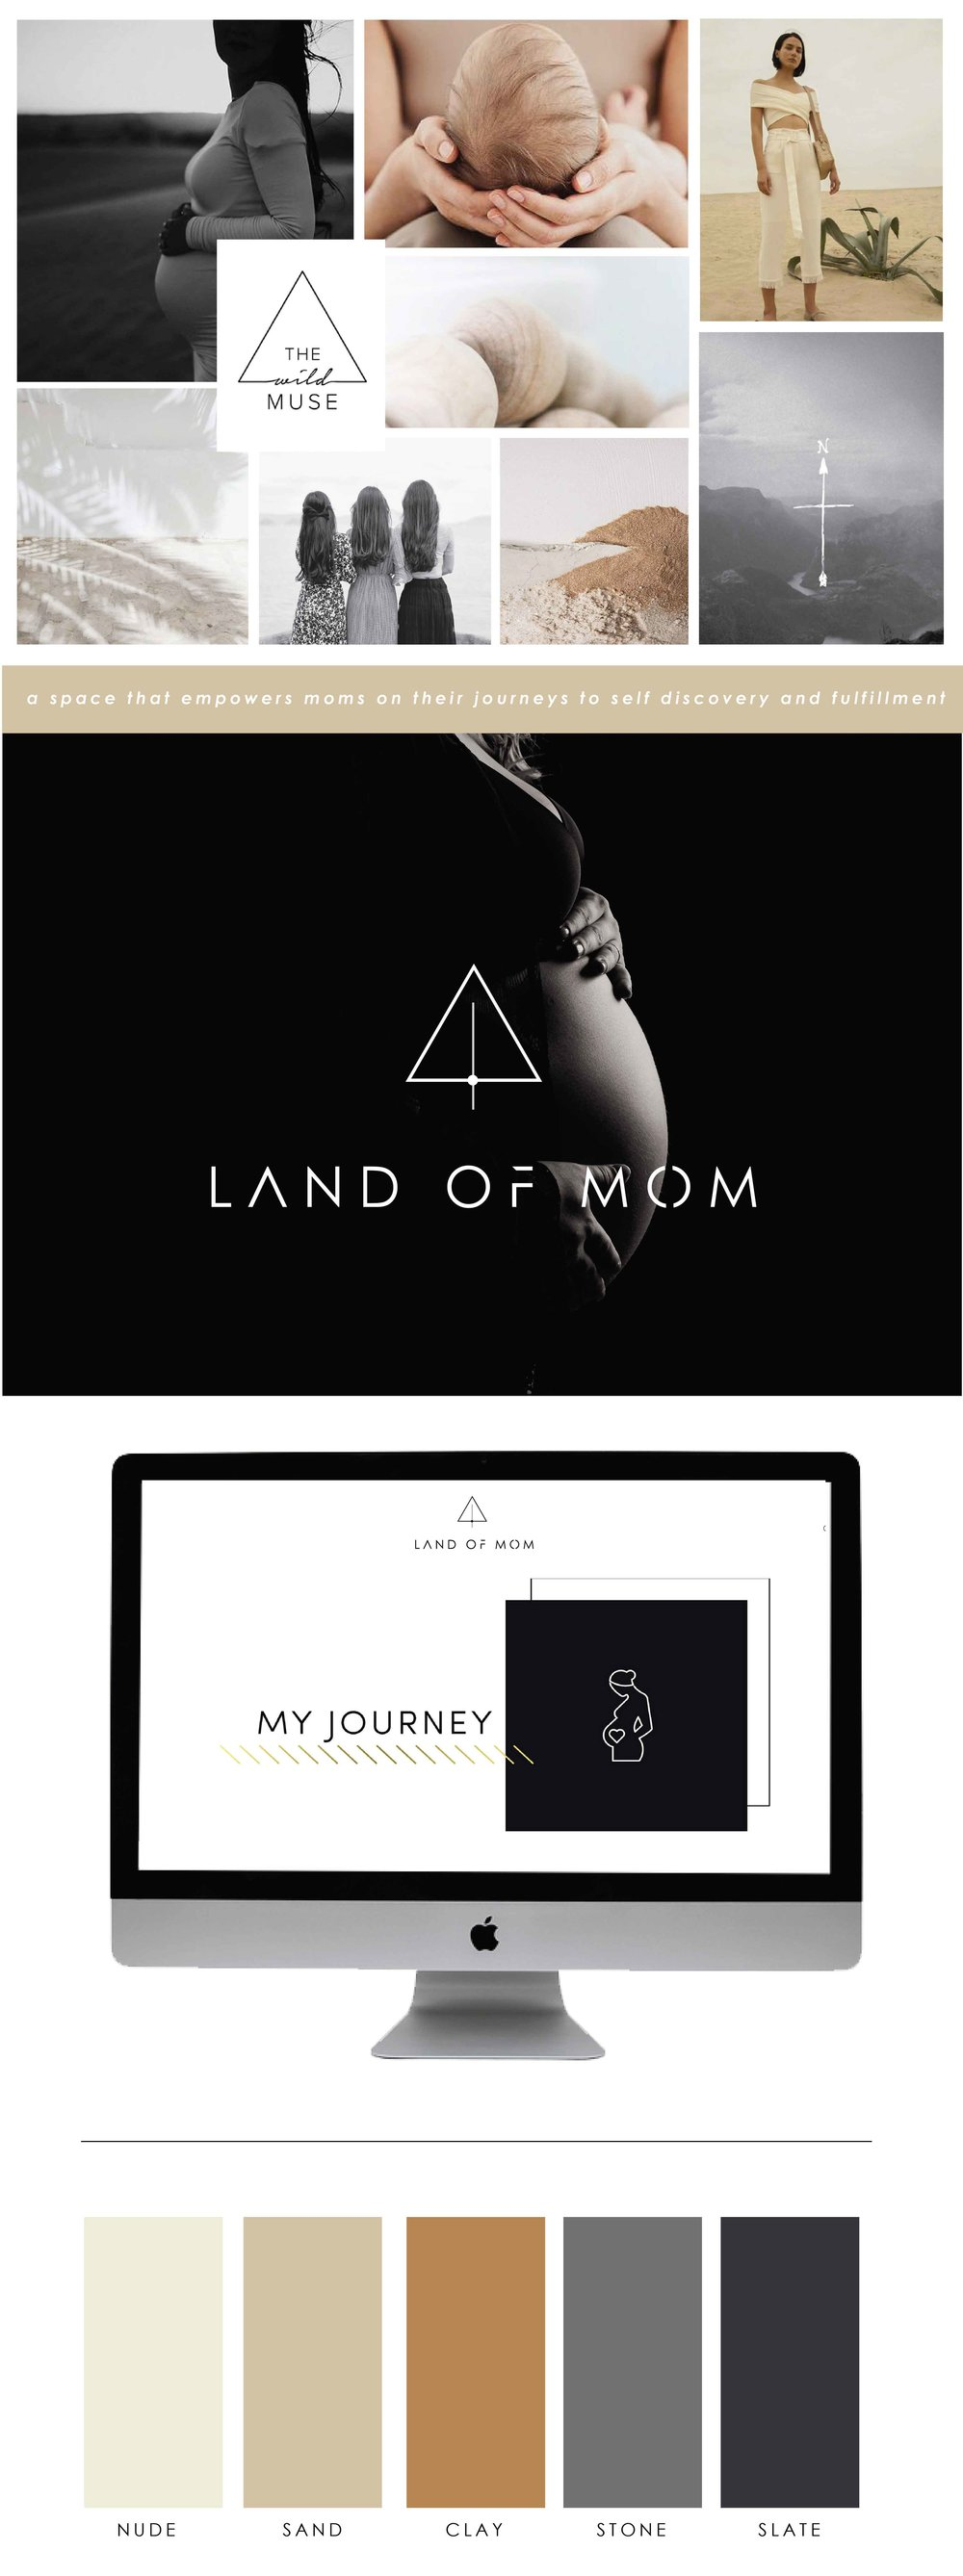 brand-board-land-of-mom-logo.jpg